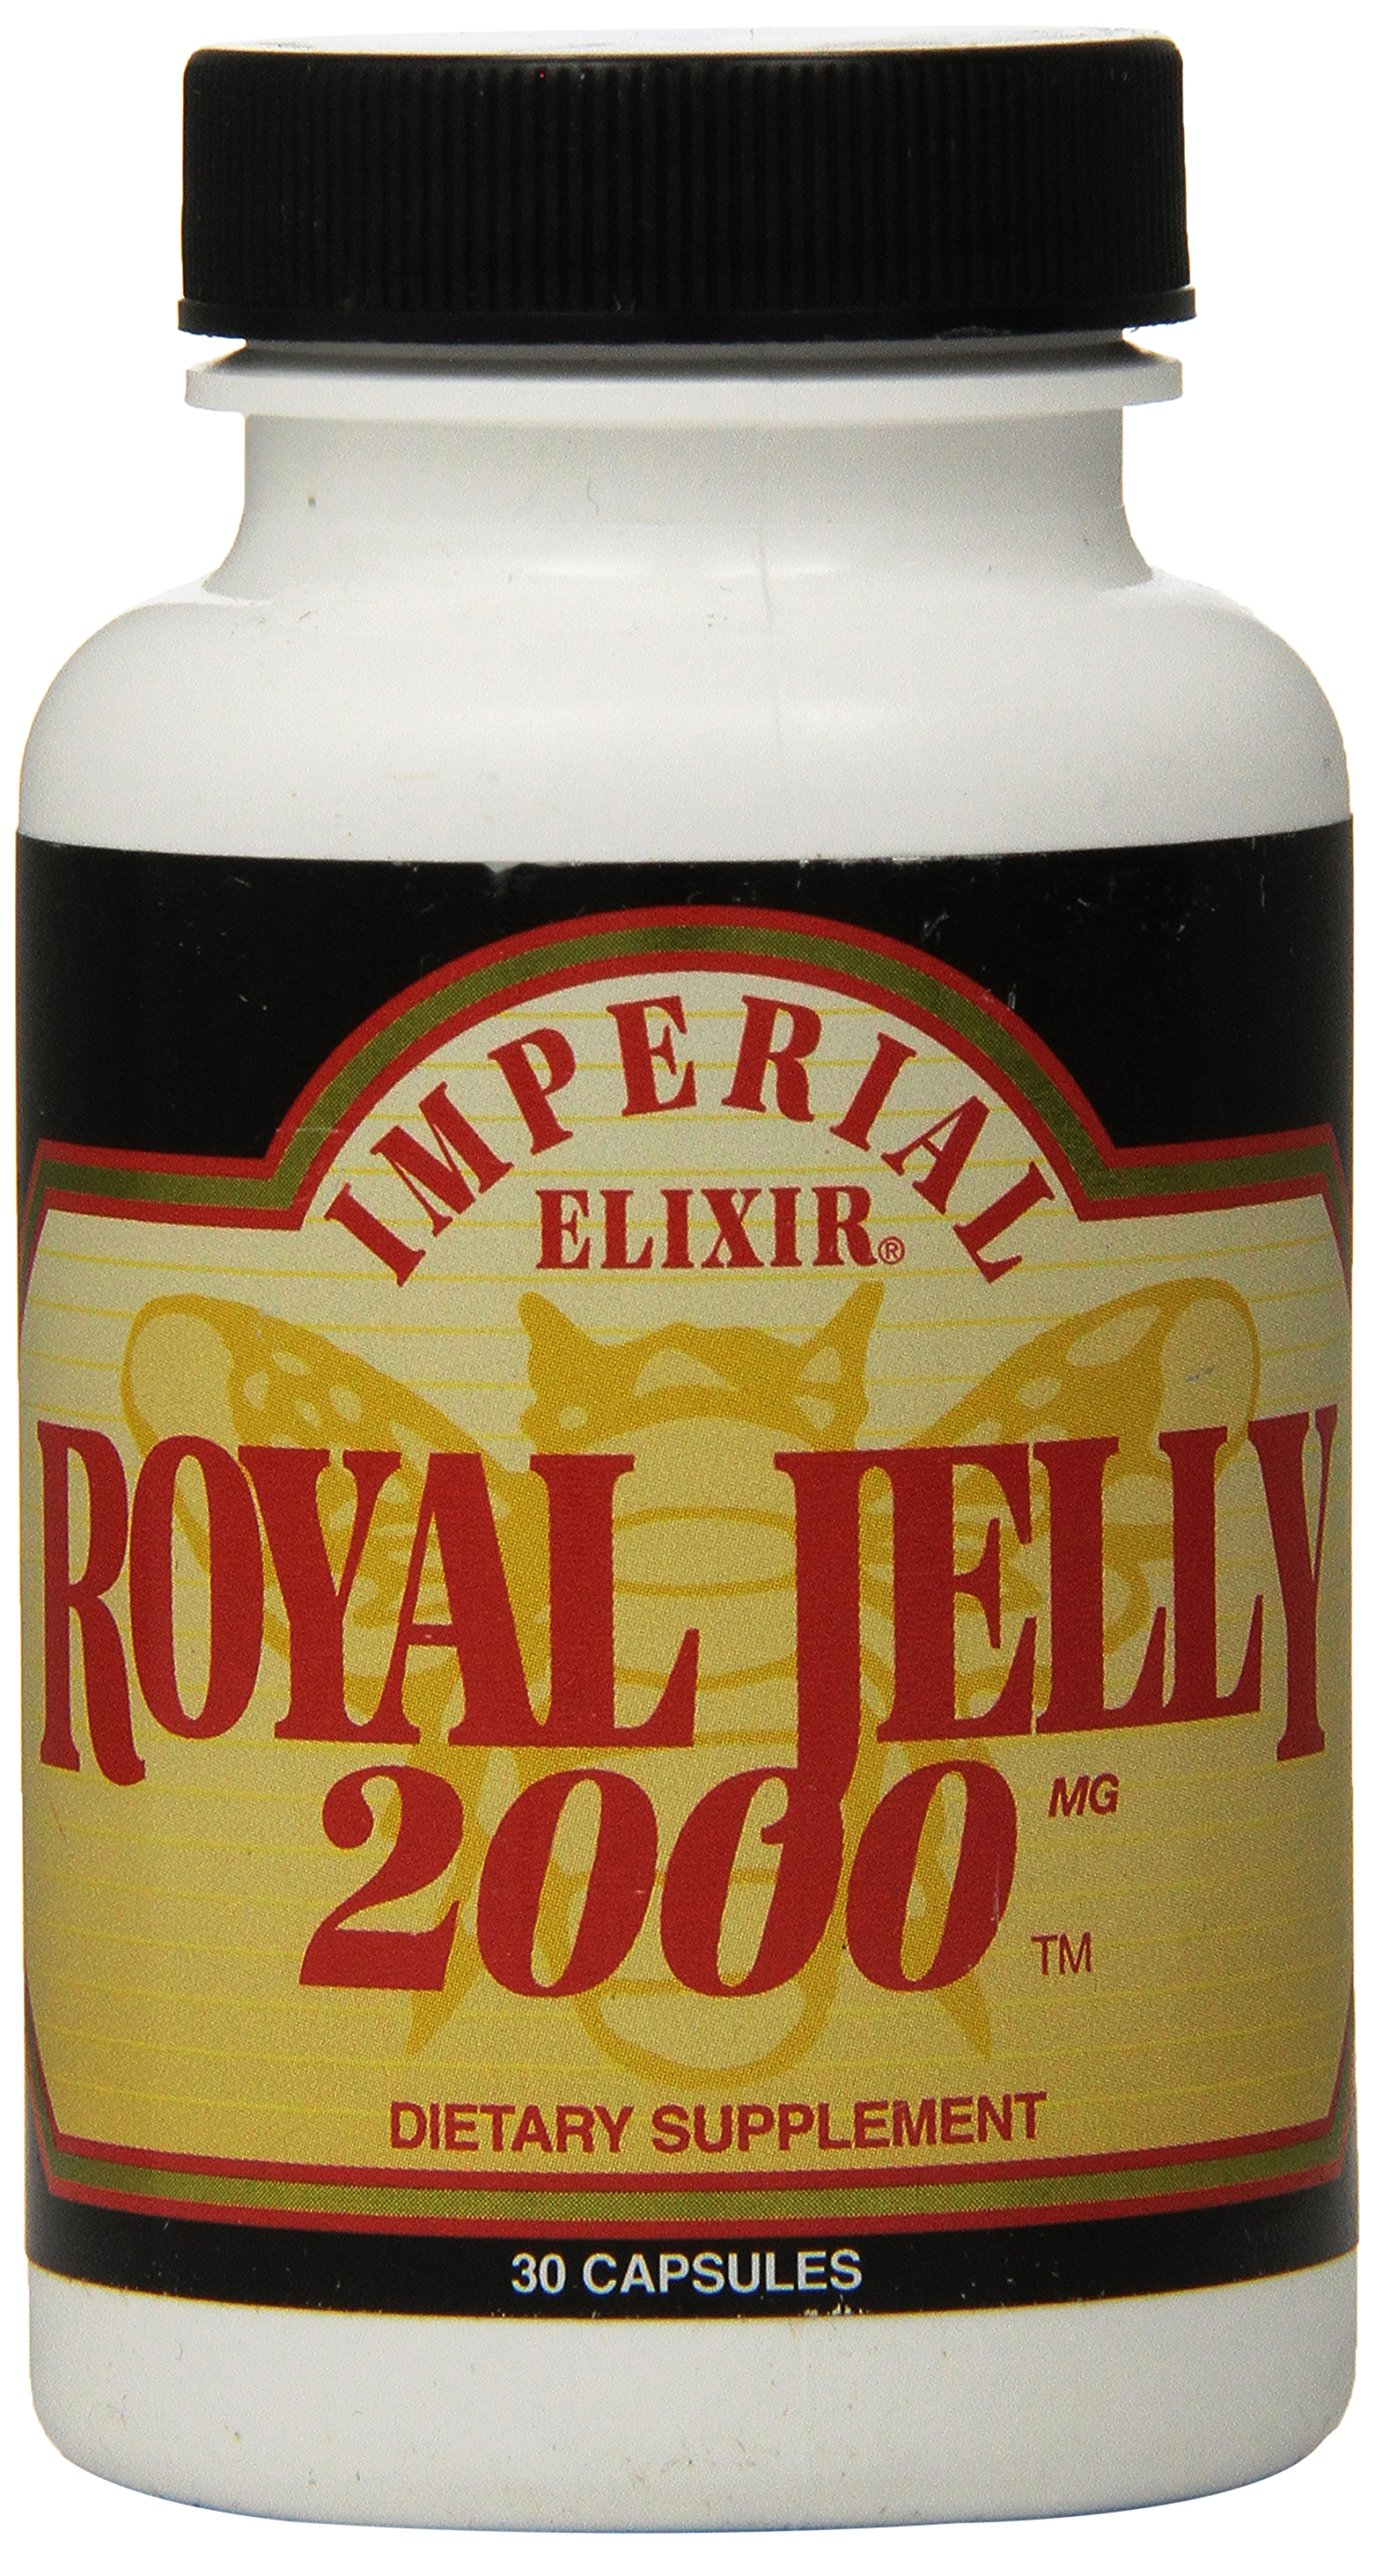 Imperial Elixir Royal Jelly, 2000 mg, 30 Capsules